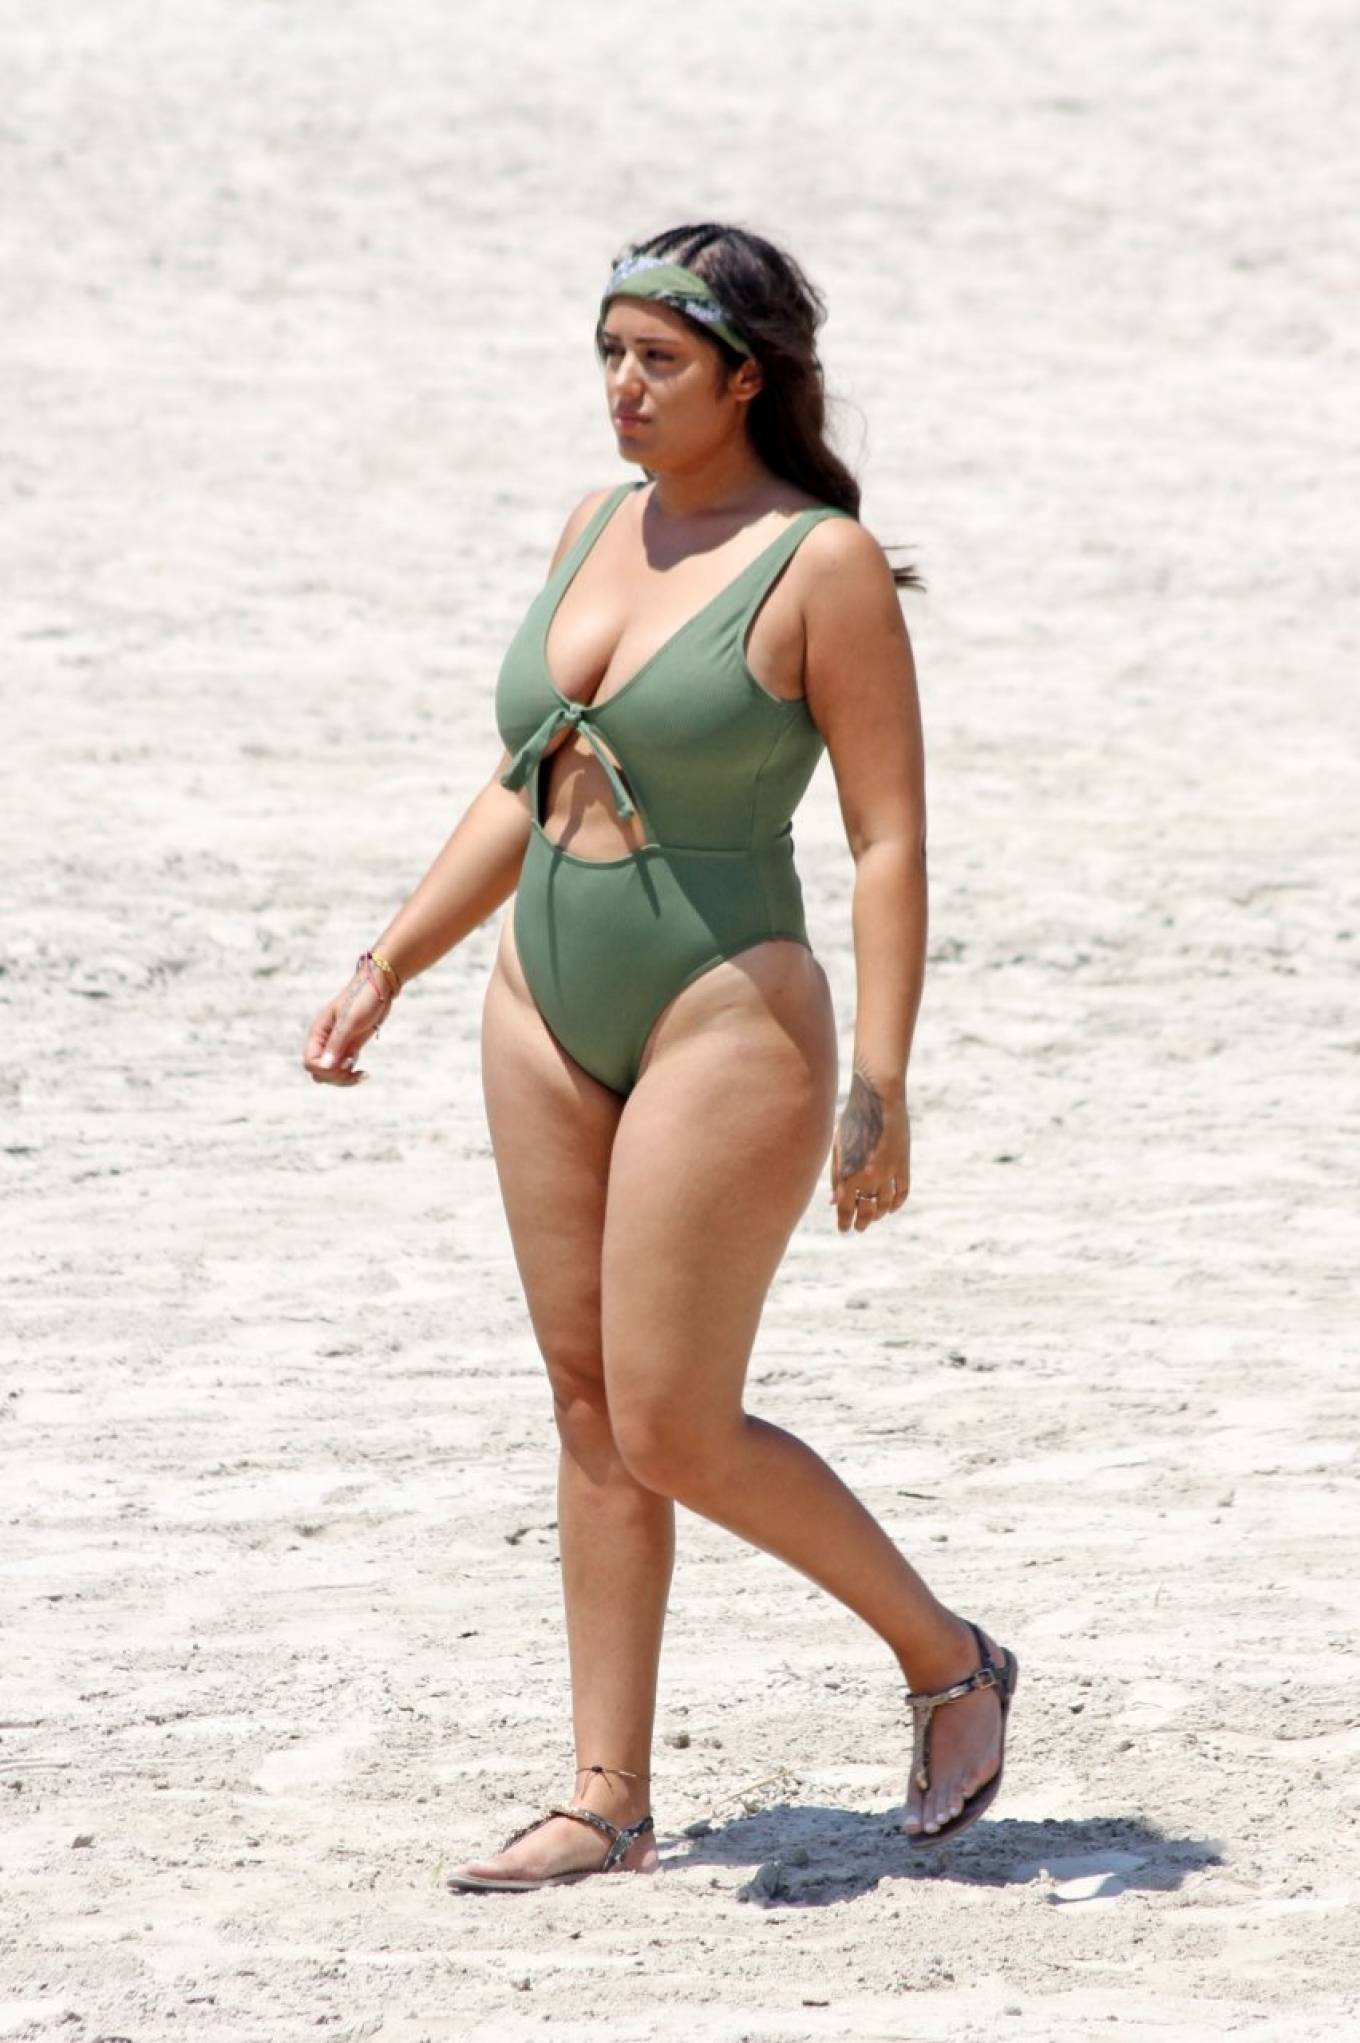 Malin Andersson 2021 : Malin Andersson – In olive bikini at the beach on holiday in Palma-03